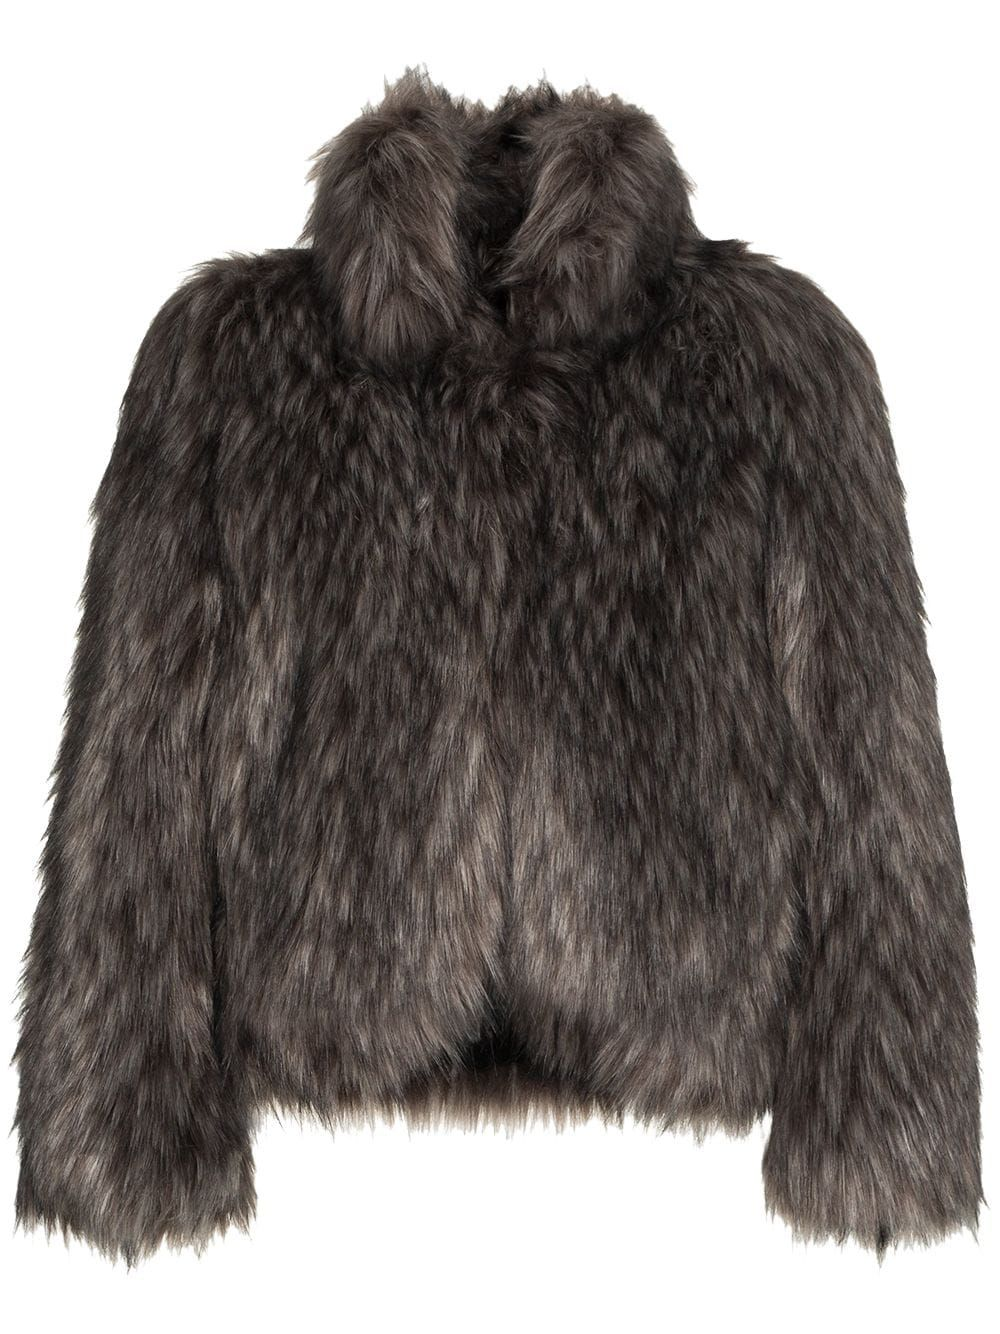 Short faux fur jacket with a collar